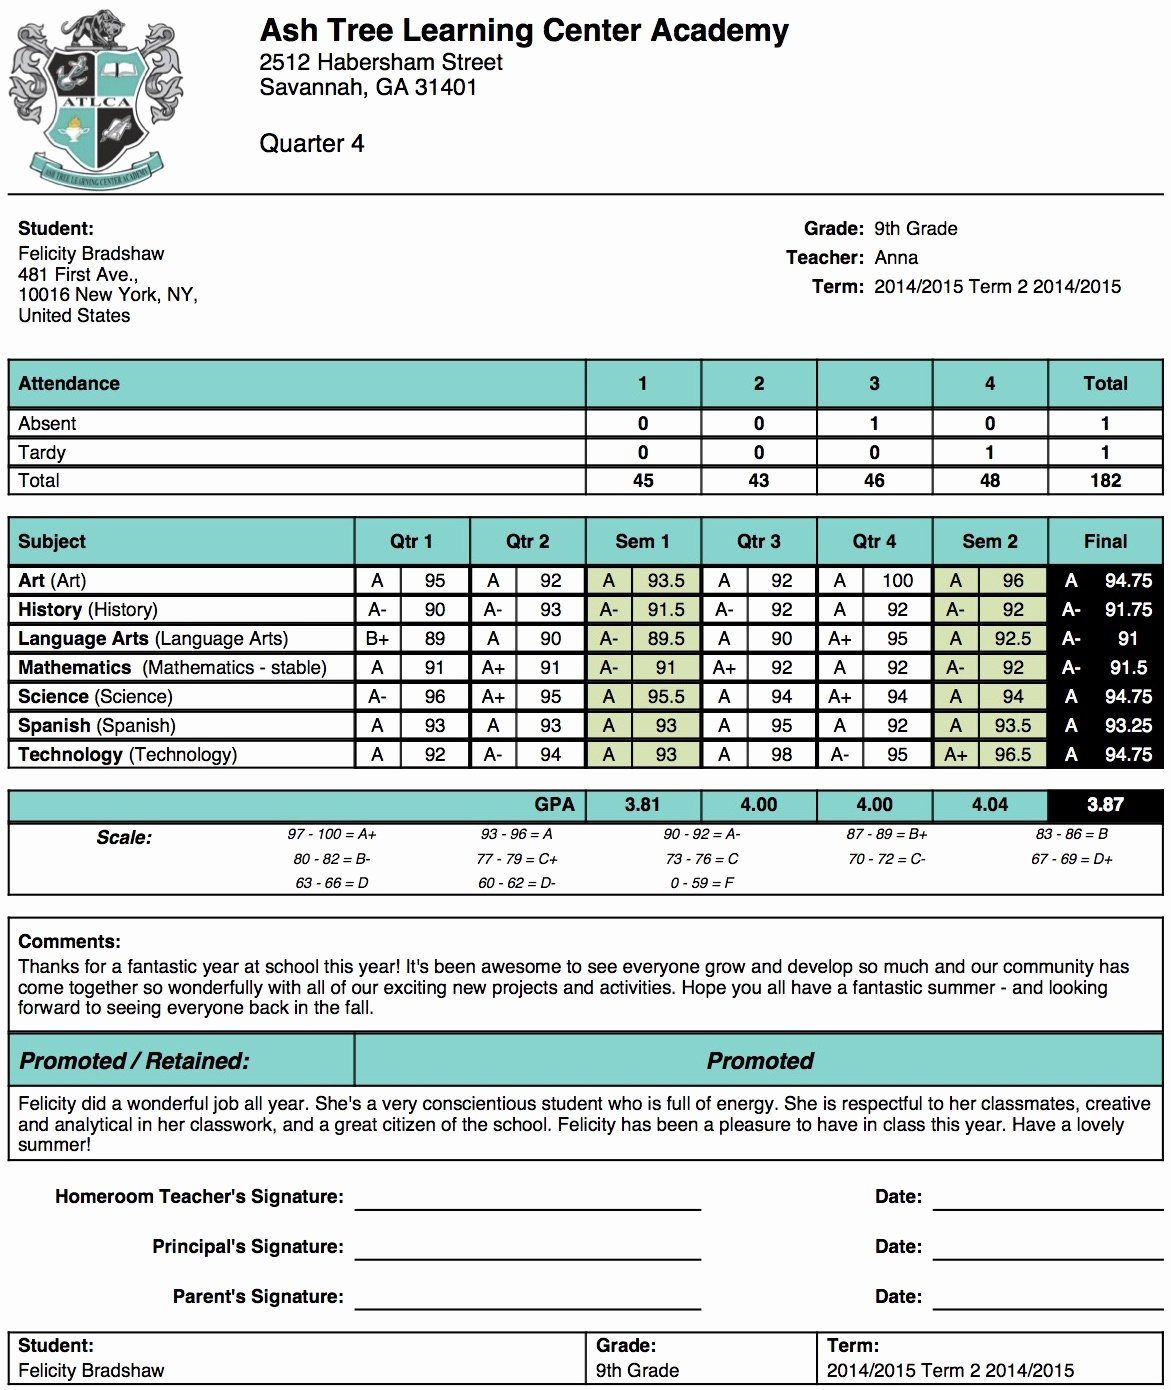 Student Information Card Template Best Of ash Tree Learning Center Academy Report Card Template